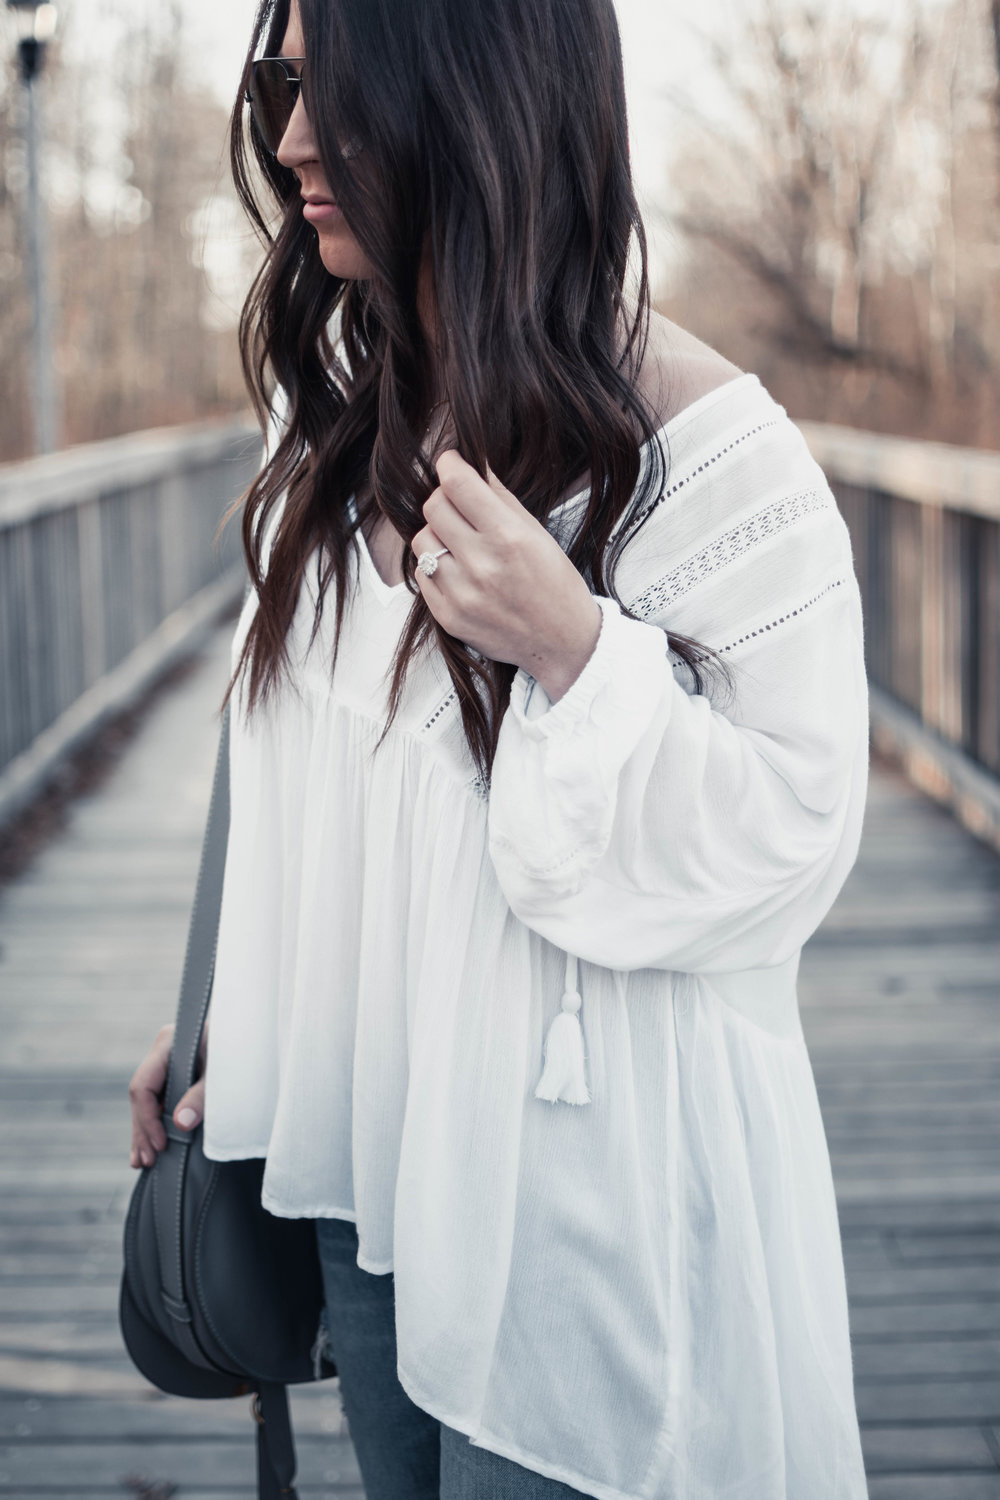 Must Have White Top for Spring | Pine Barren Beauty | spring outfit idea, spring outfit inspiration, spring fashion, how to wear a white top for spring, white flowy top, distressed denim, marc fisher wedges, Chloe bag